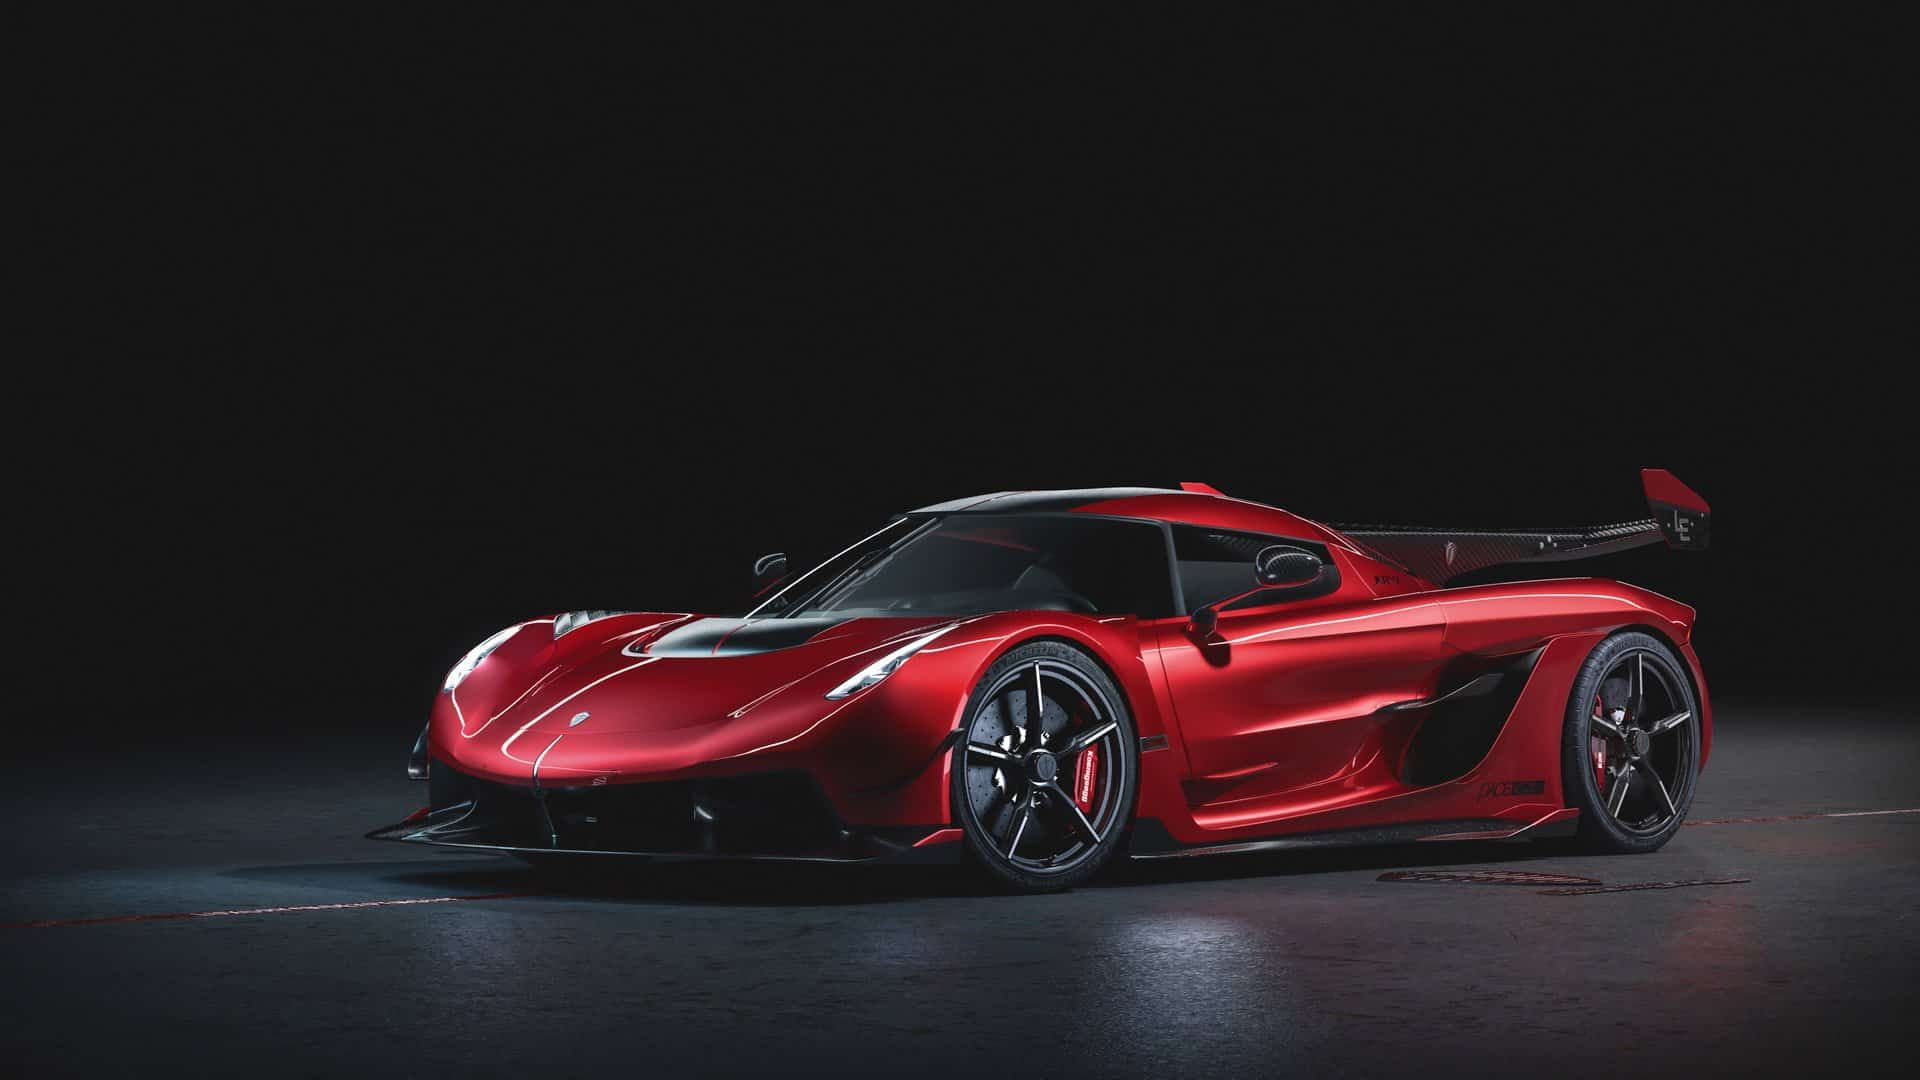 Simply Breathtaking The New Koenigsegg Jesko Cherry Red Edition10 Koenigsegg Super Cars Luxury Cars